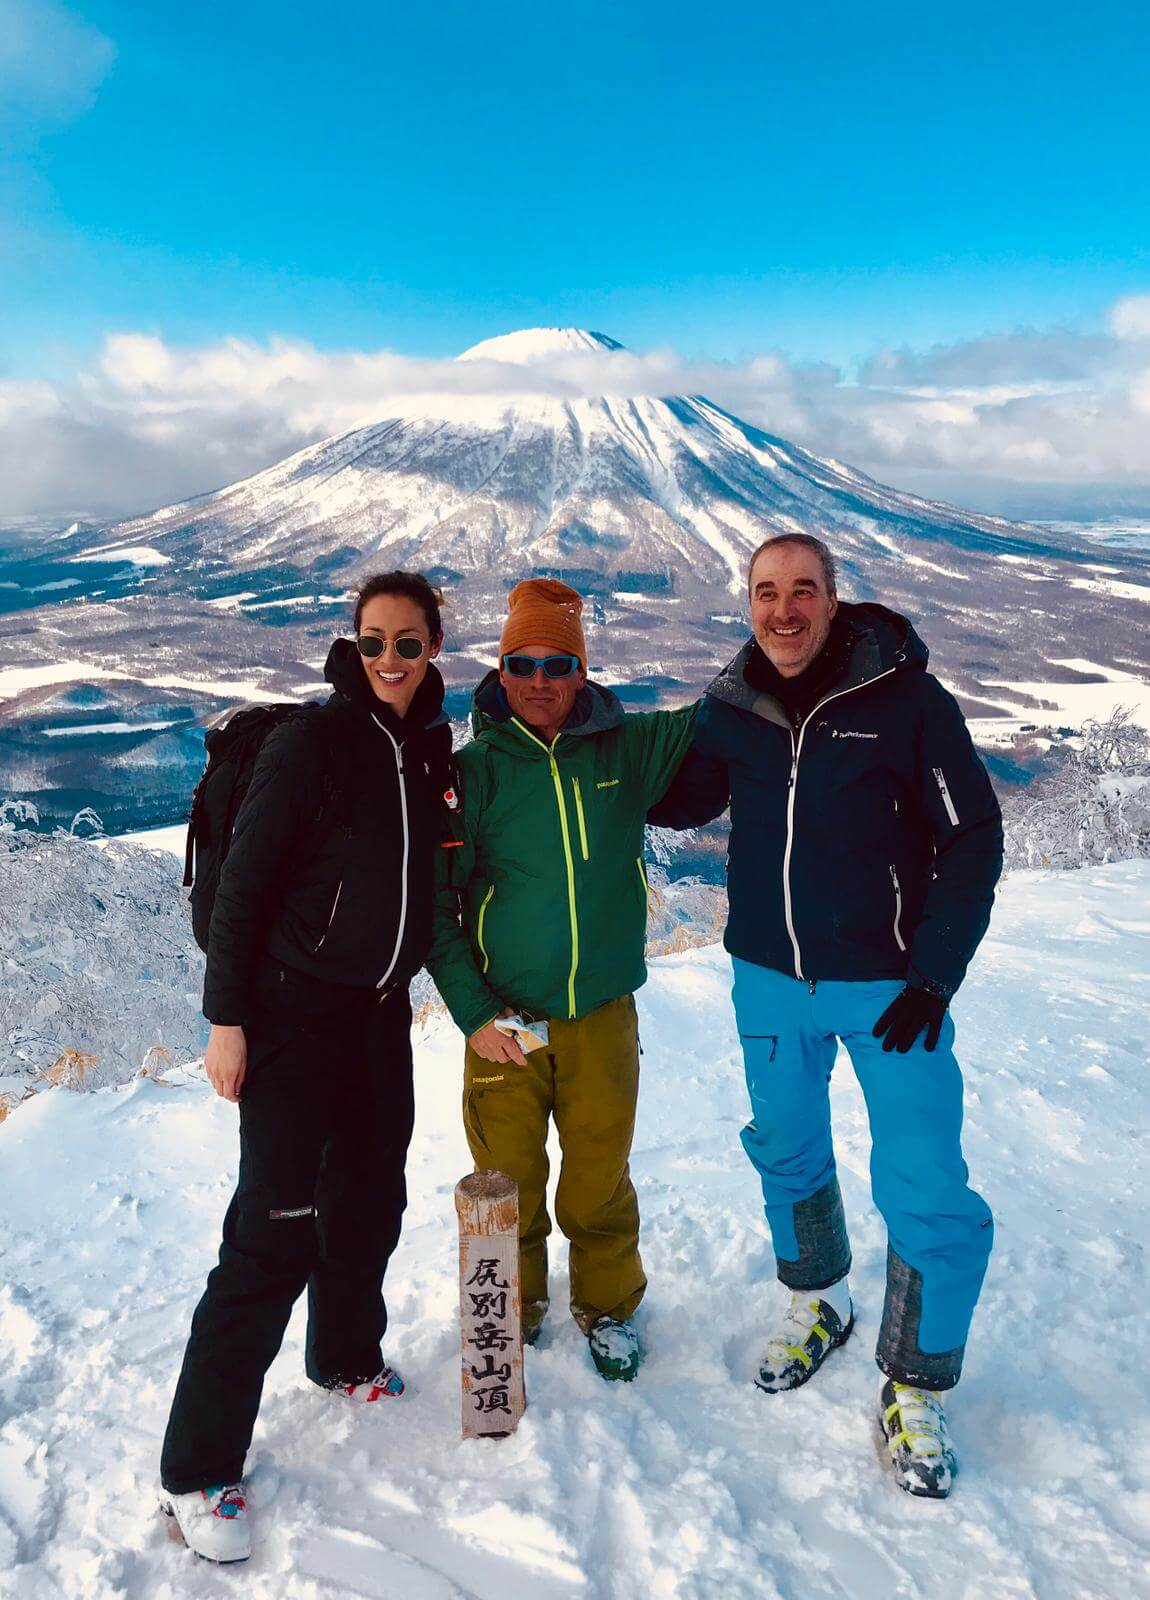 skiers in japan on snowy mountain